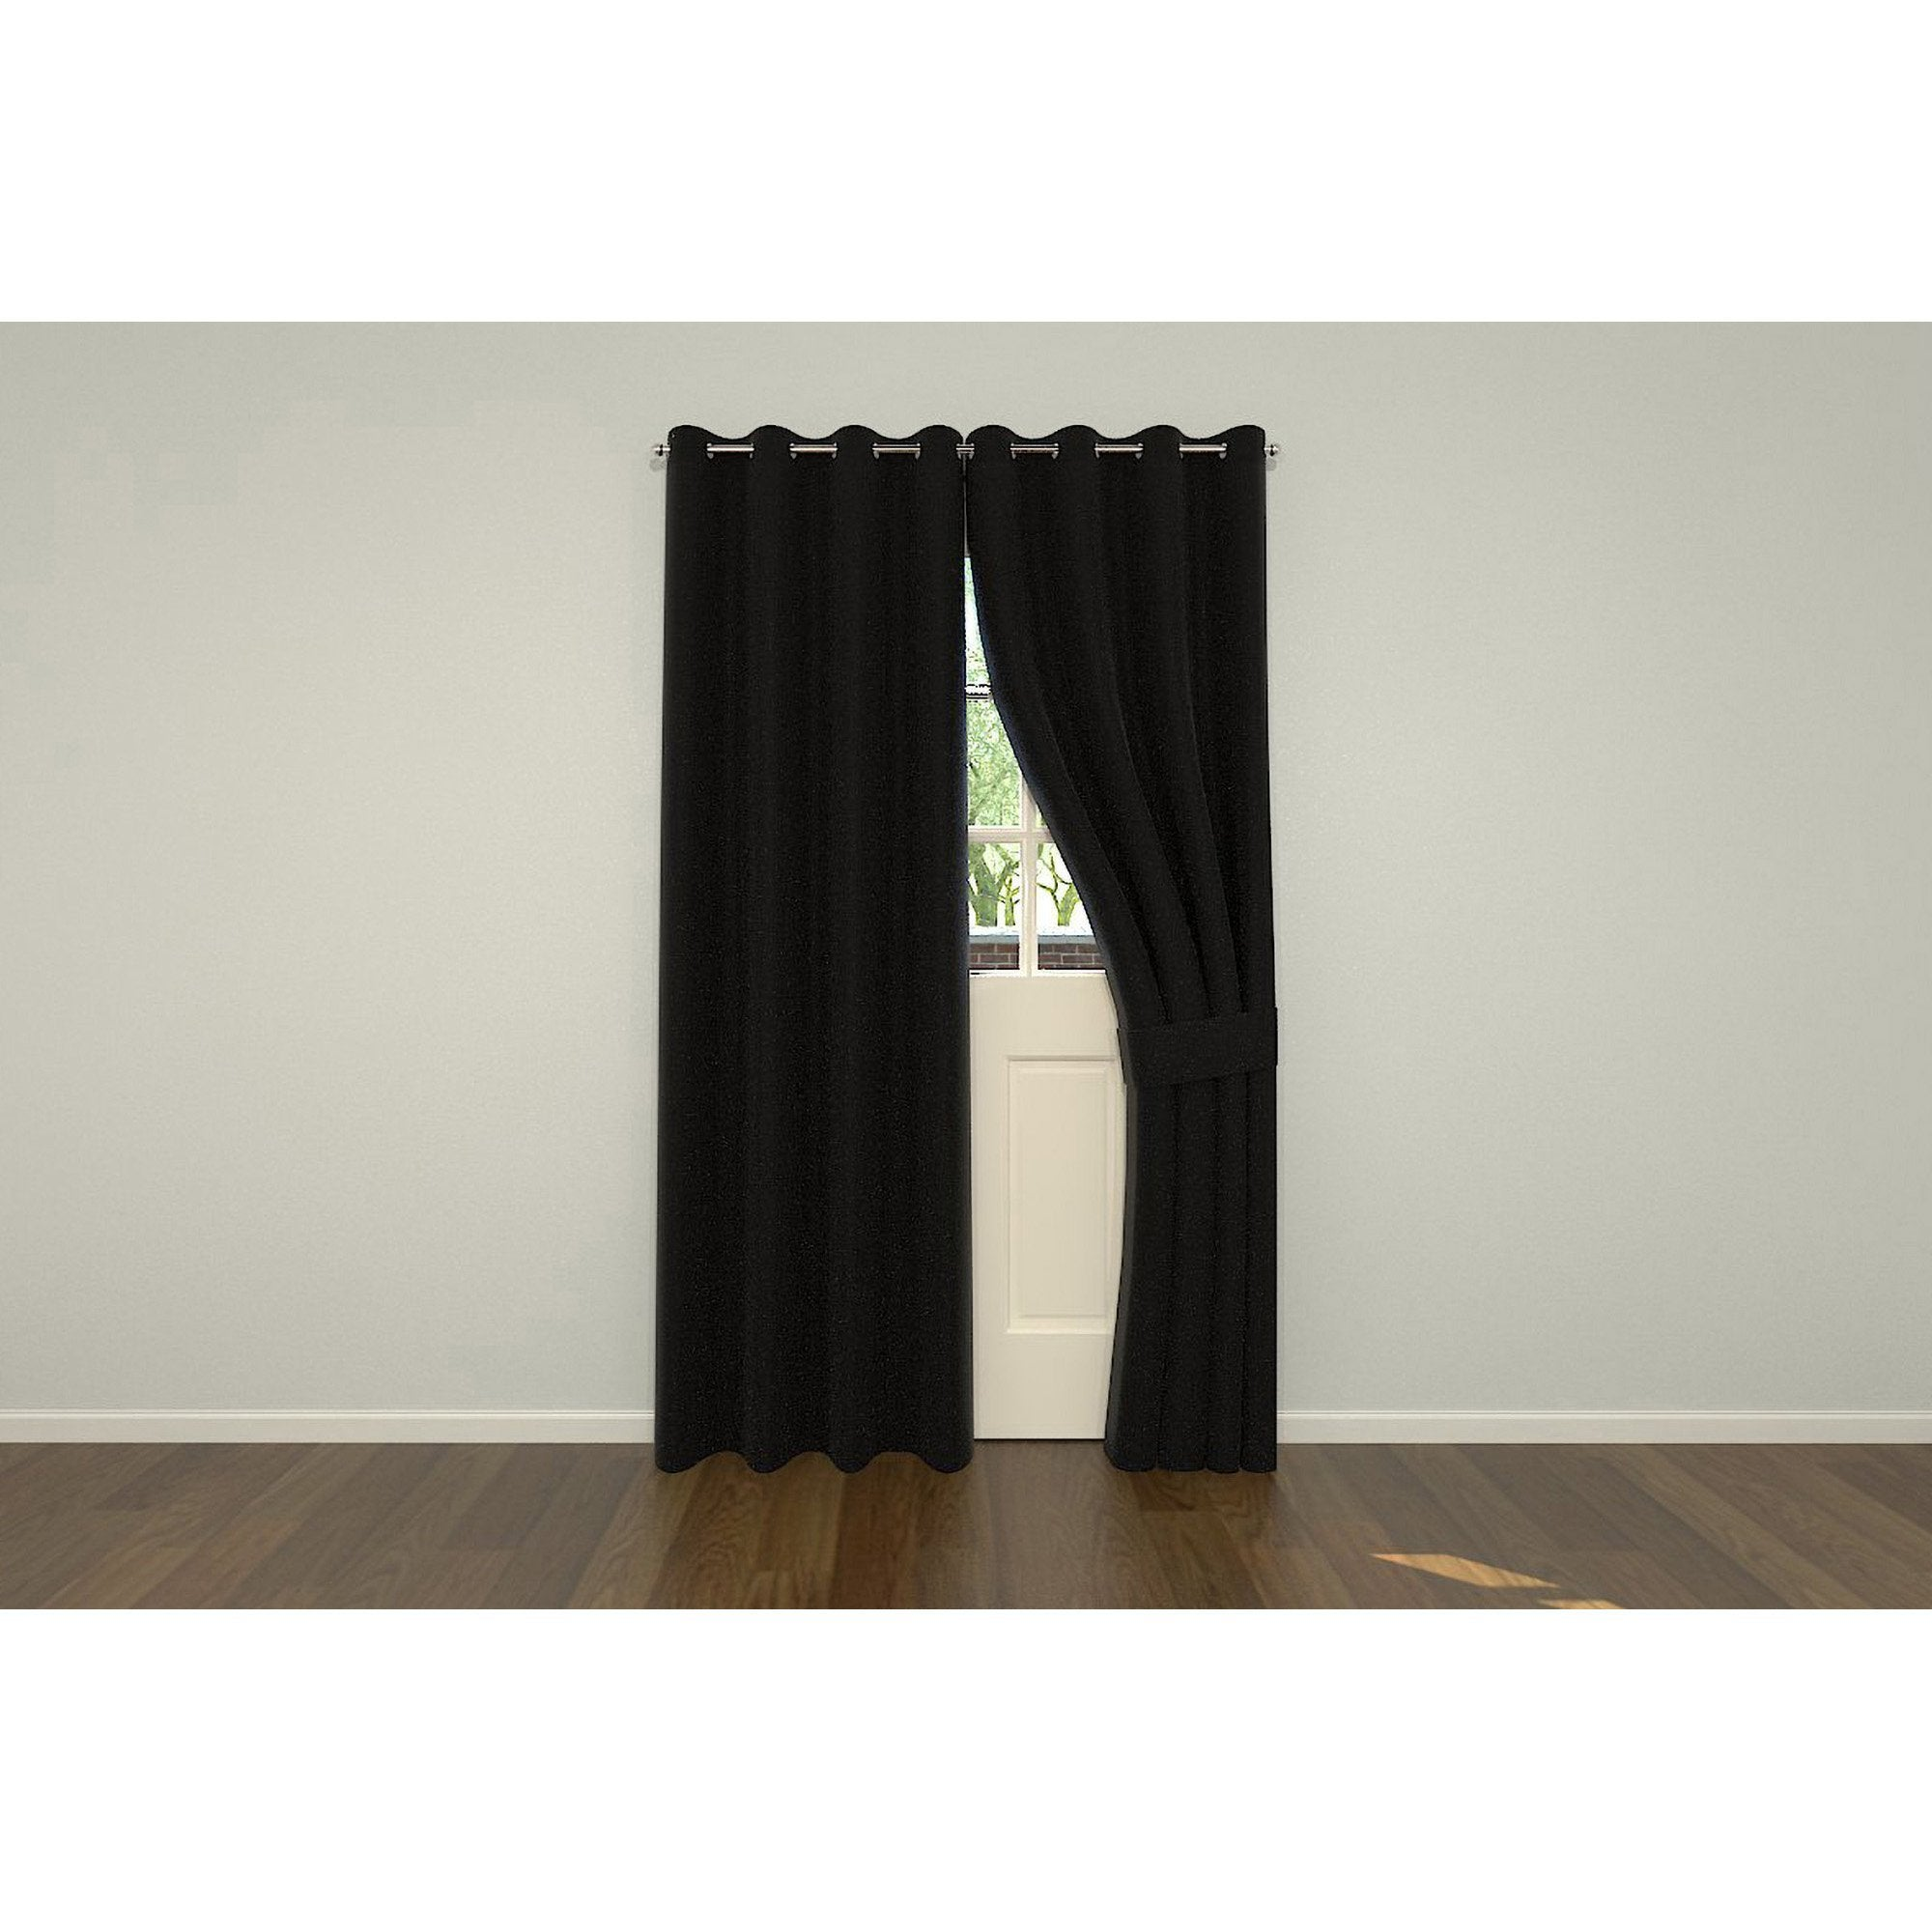 Kilo Wool Serge Curtains